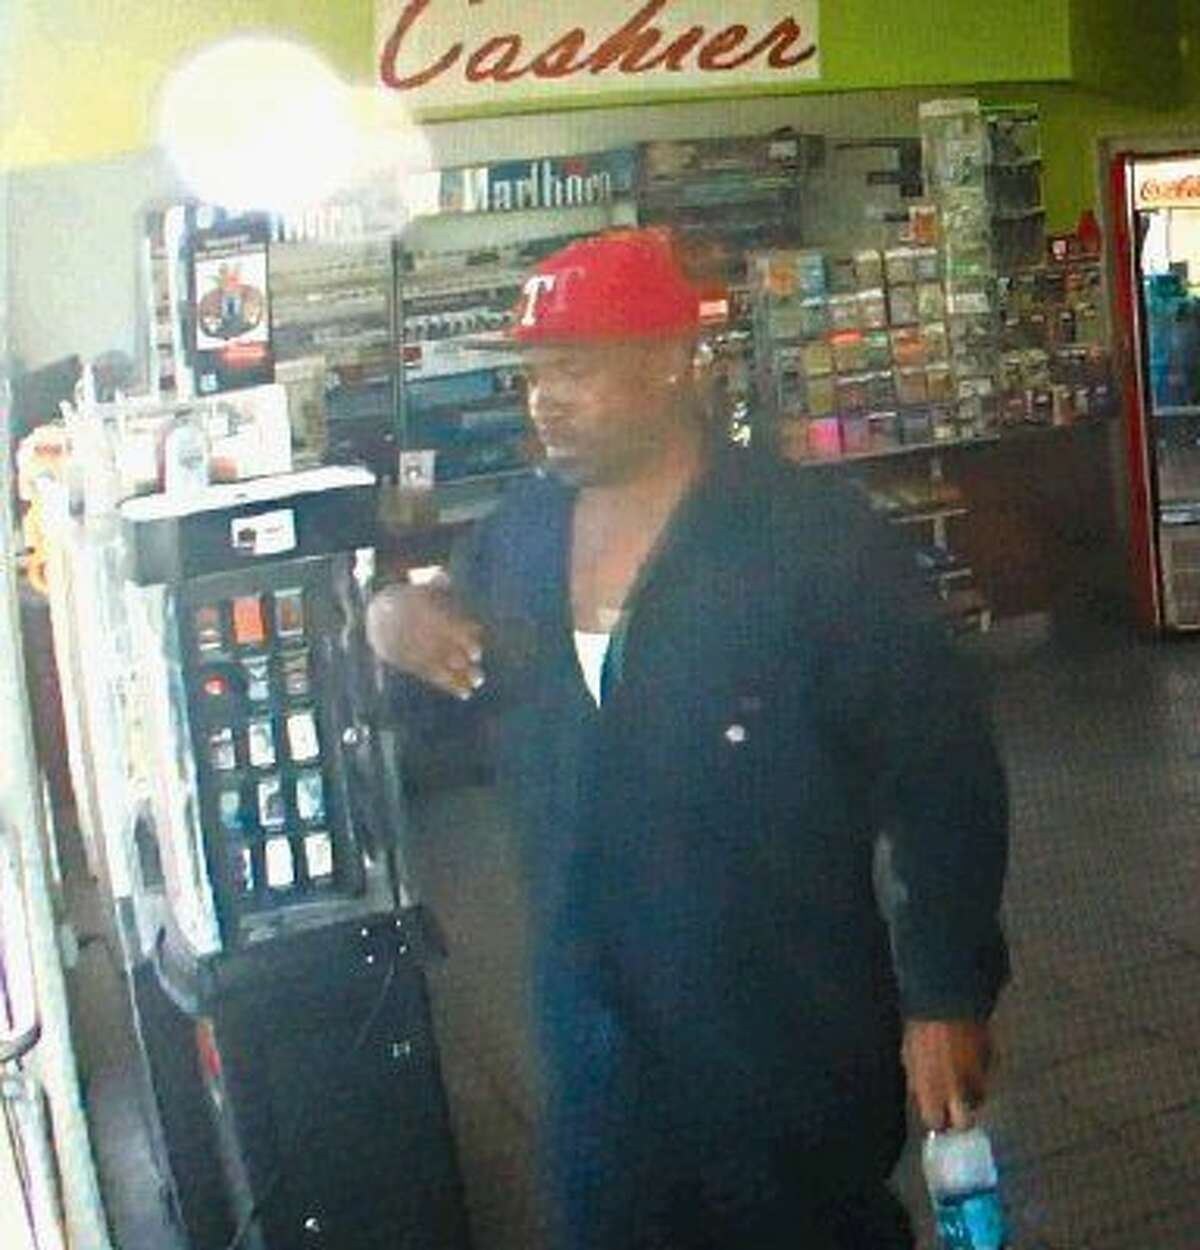 According to police, one of the suspects took cash from the register while the clerk was in a store room.